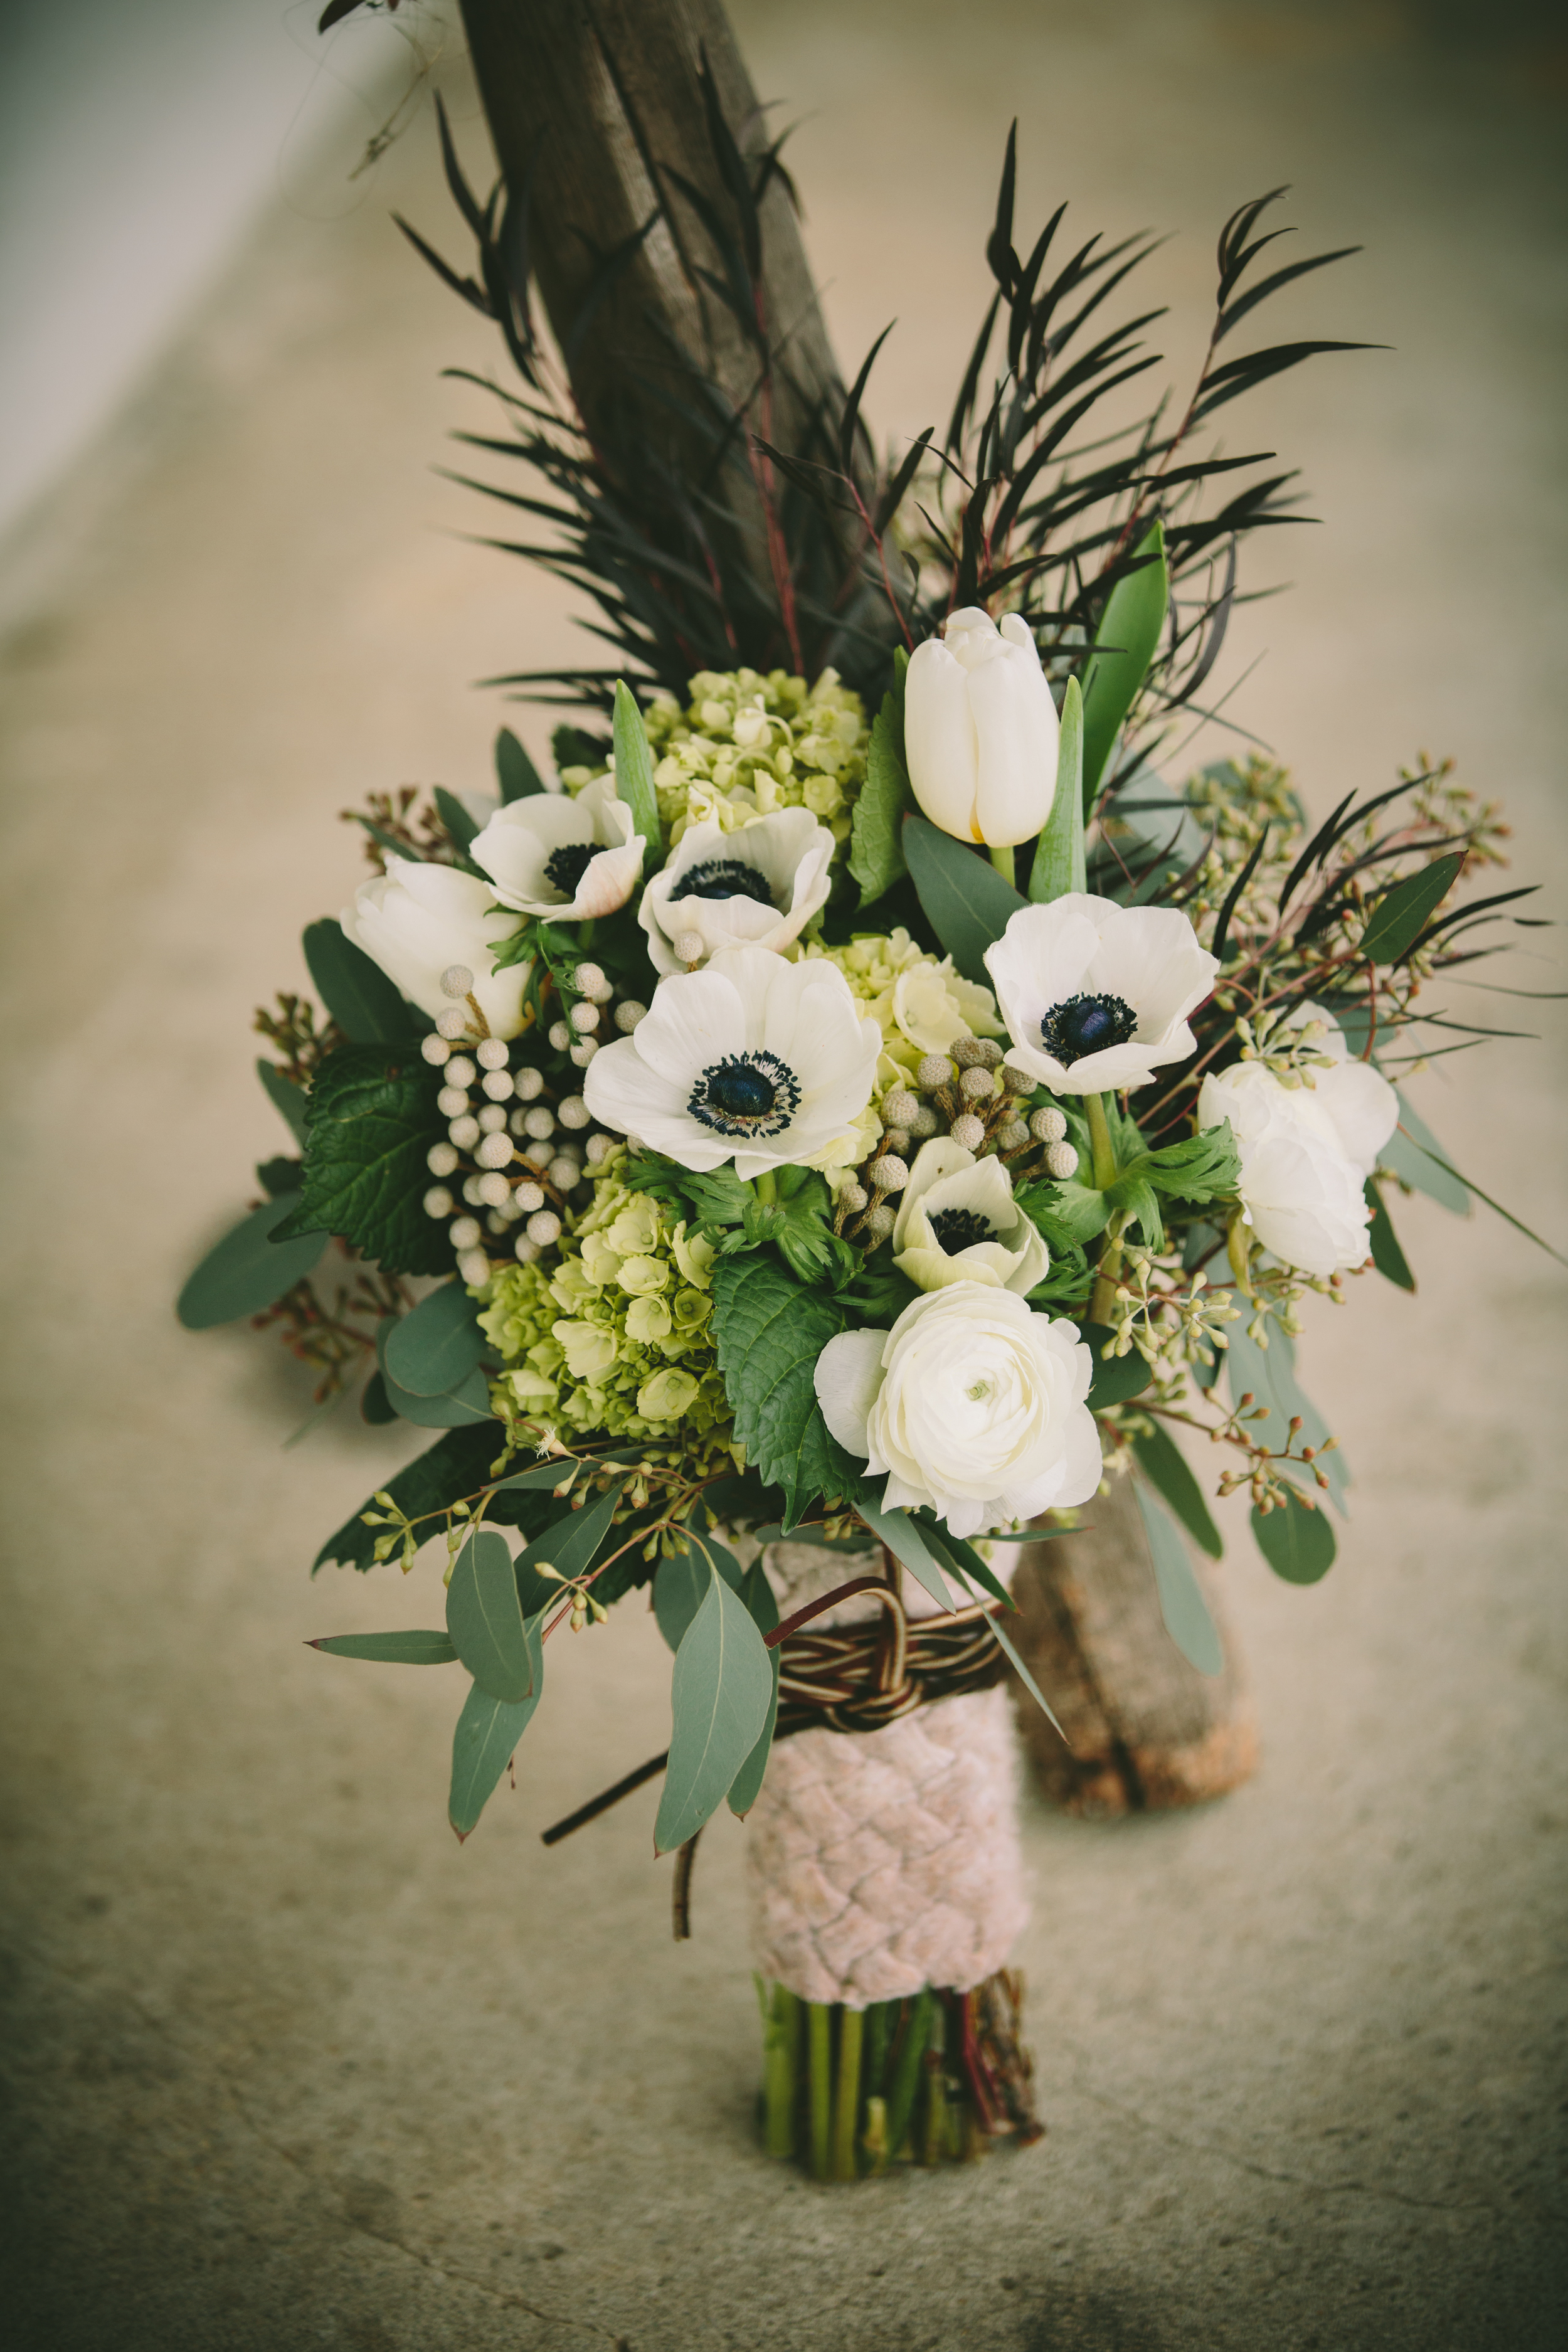 Bouquet wrapped in a vintage cable knit sweater tied with leather cord.